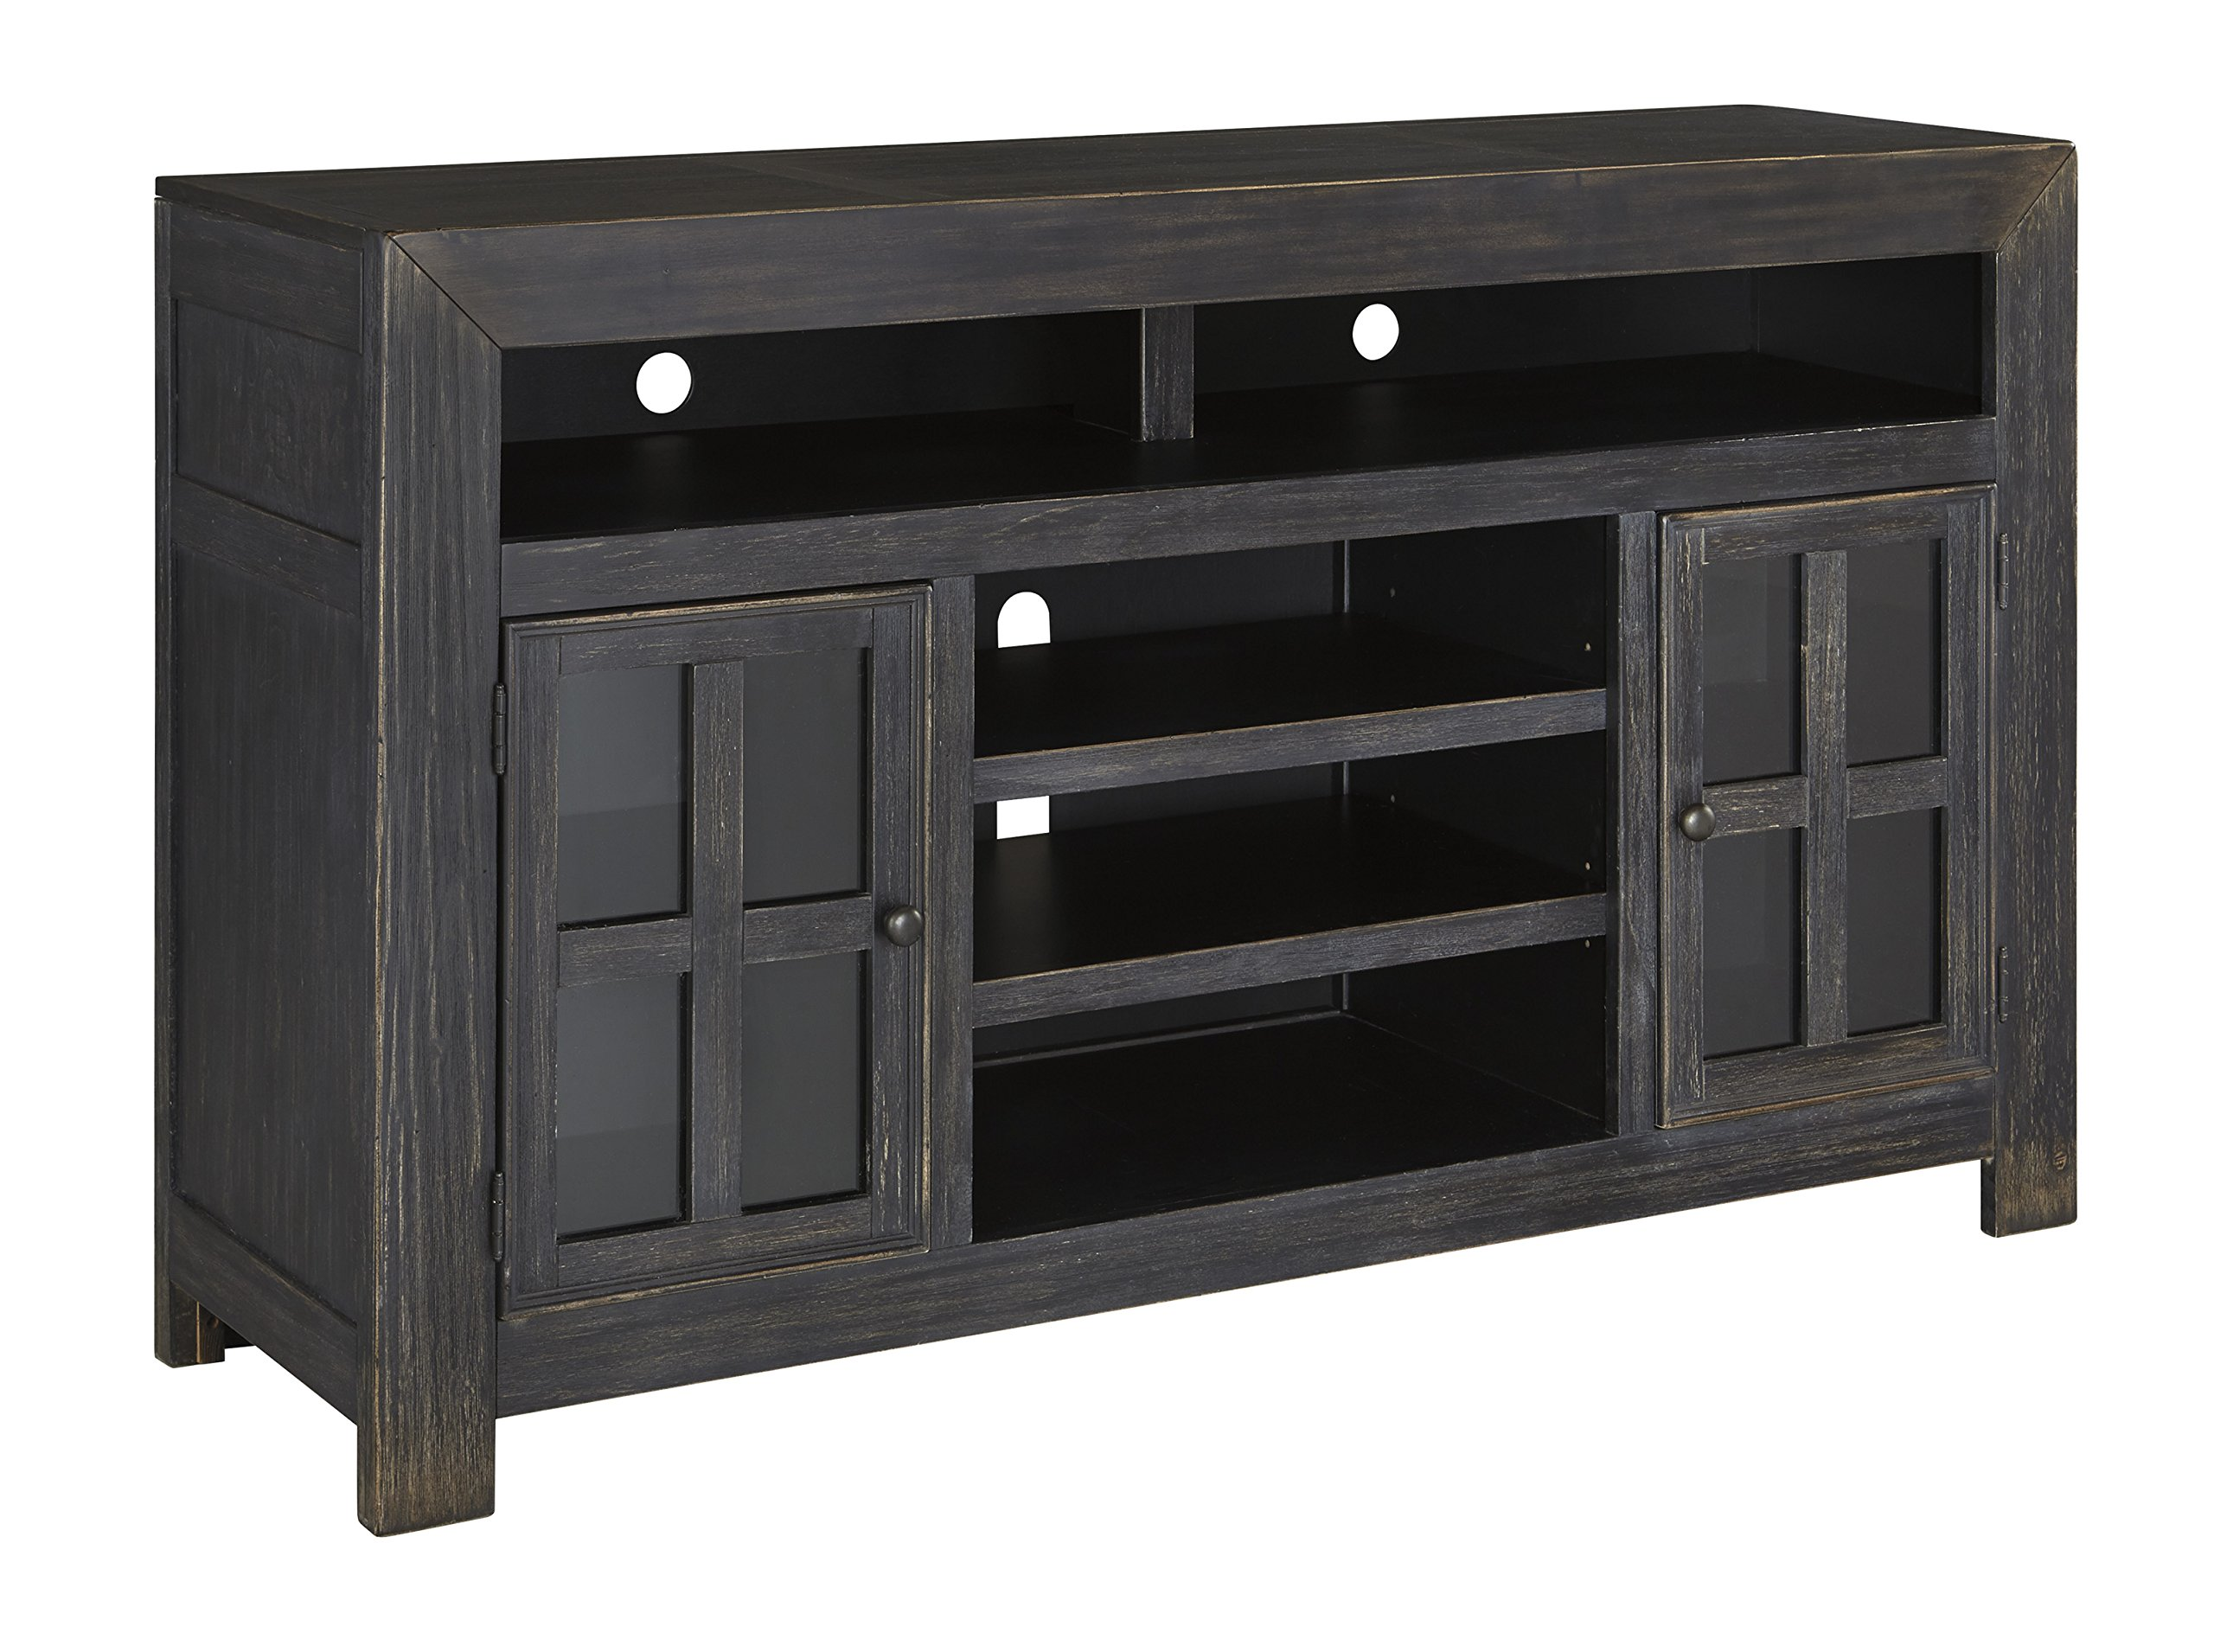 Ashley Furniture Signature Design - Gavelston TV Stand - Electric Fireplace - Entertainment Console - 61 in - Black by Signature Design by Ashley